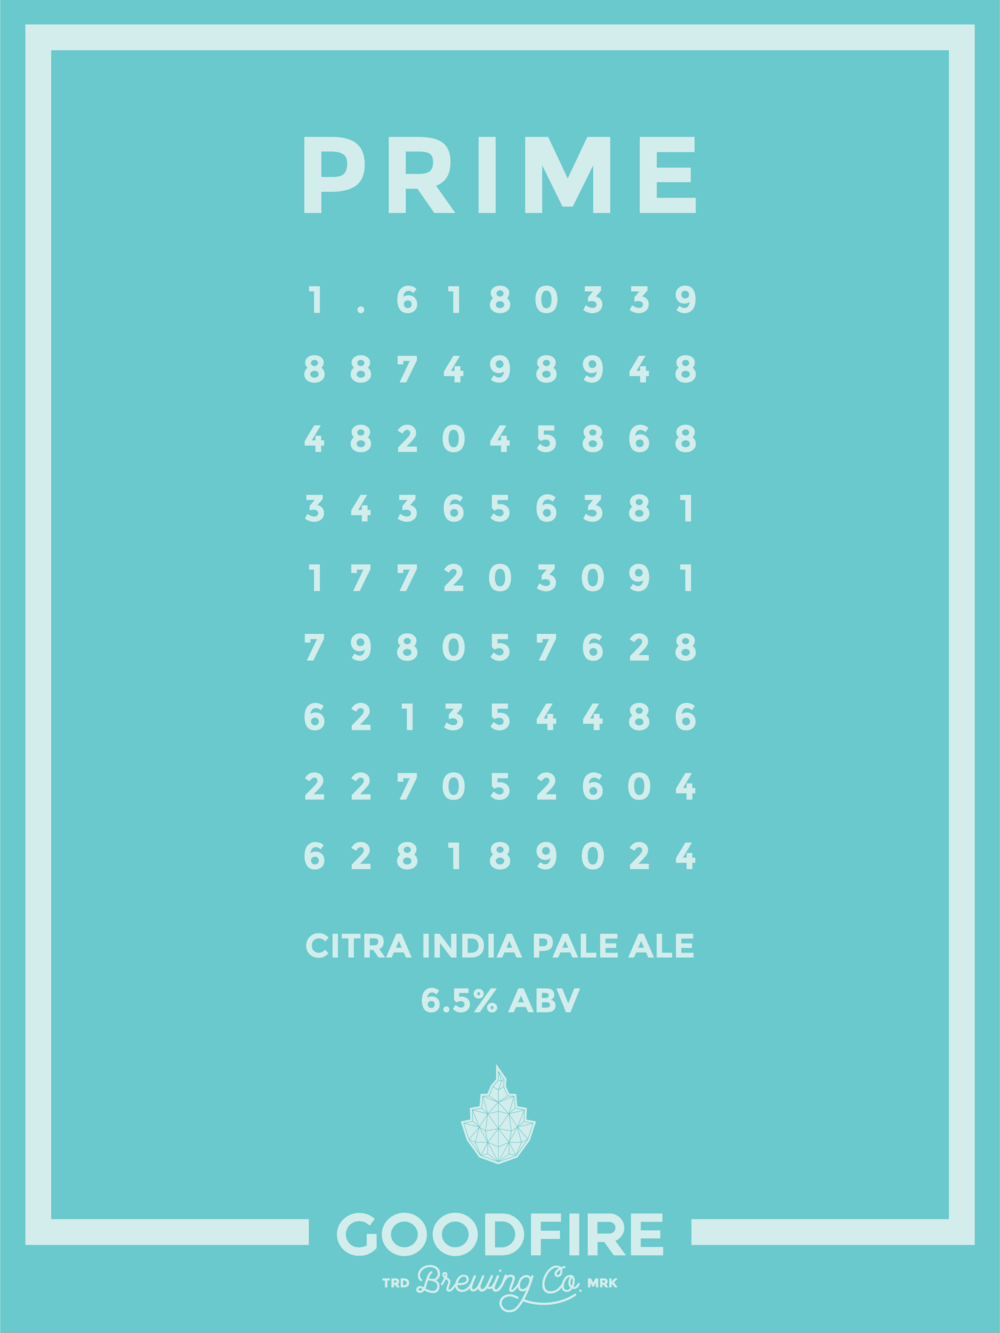 Goodfire Prime Poster.png